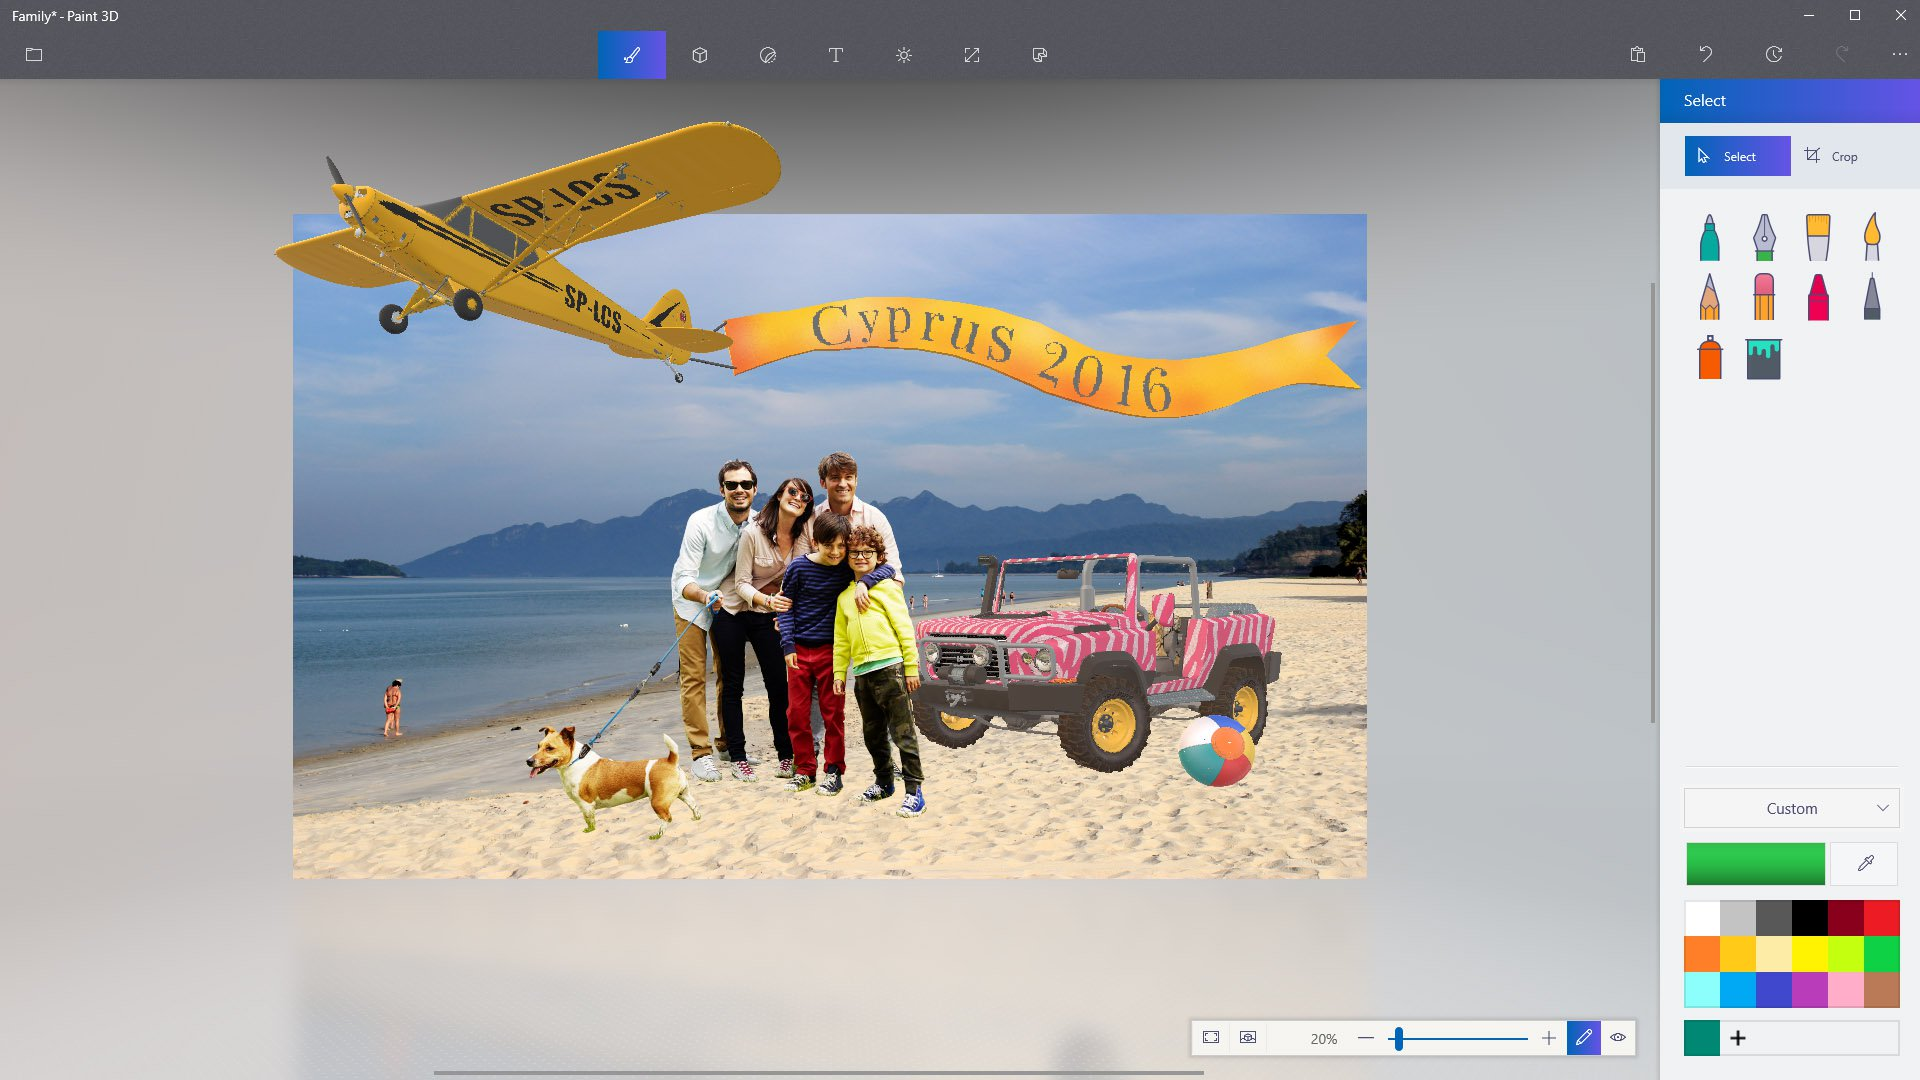 Updated Paint 3D App Gets July Refreshes & Updates